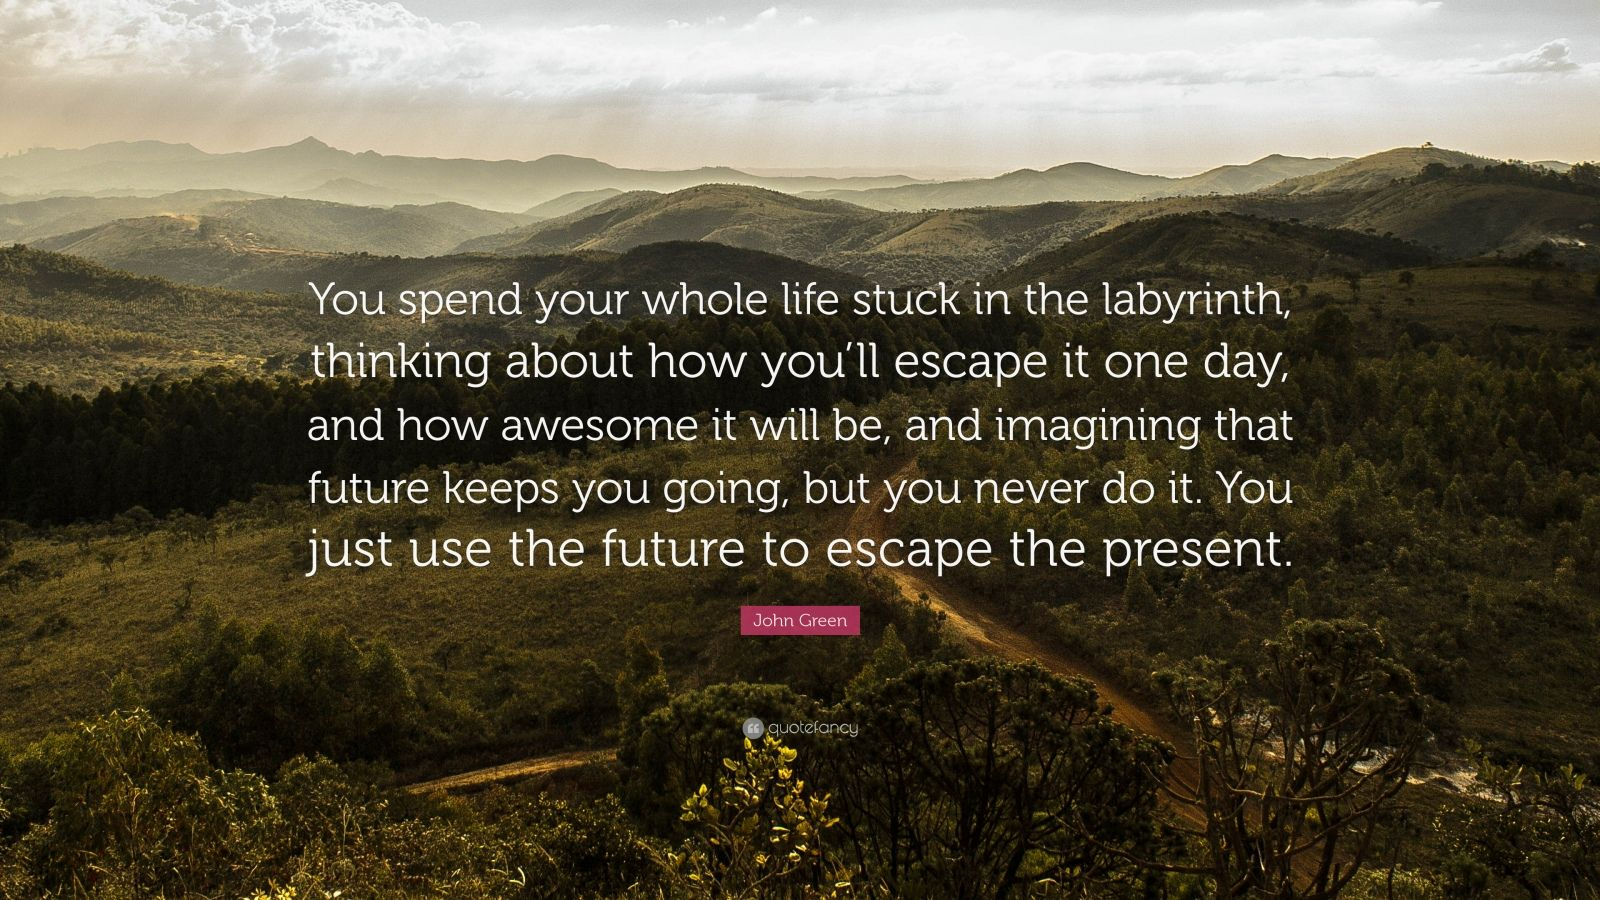 "John Green Quote: ""You spend your whole life stuck in the labyrinth, thinking about how you'll escape it one day, and how awesome it will be, and imagining that future keeps you going, but you never do it. You just use the future to escape the present."""